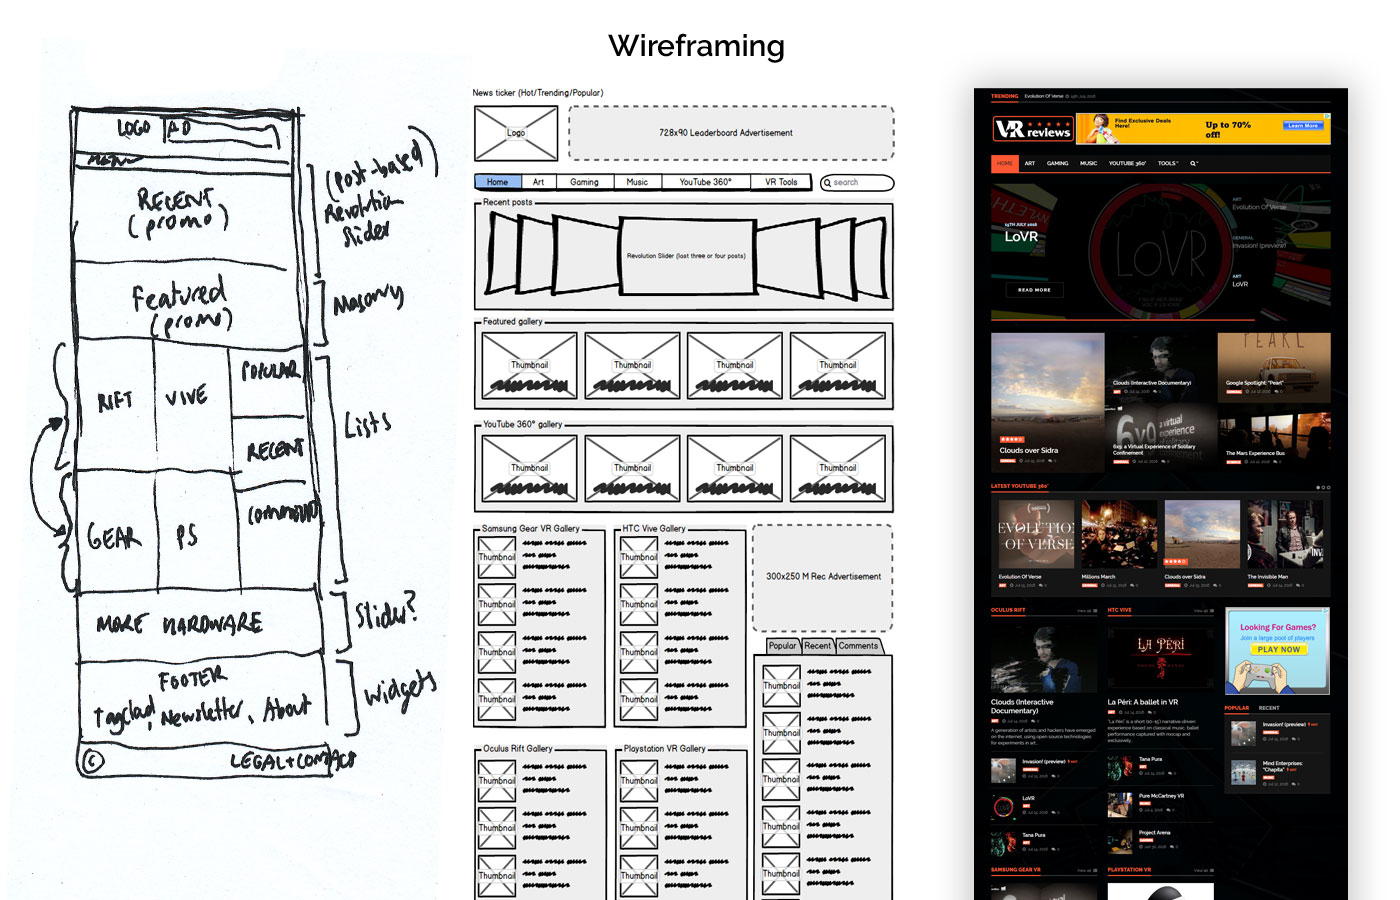 v-r.reviews - wireframing